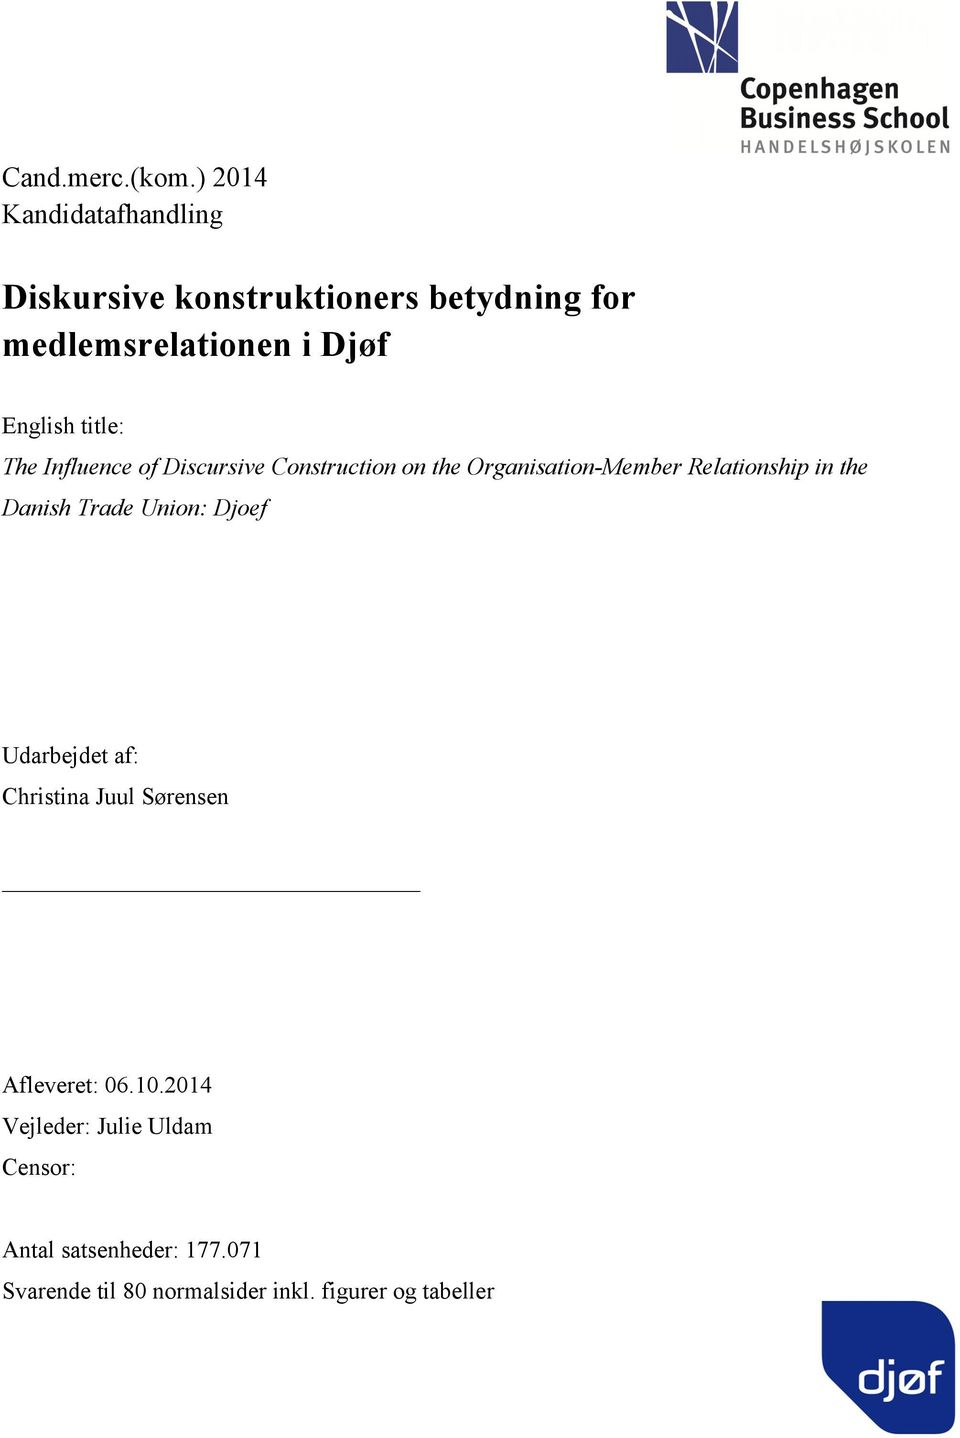 English title: The Influence of Discursive Construction on the Organisation-Member Relationship